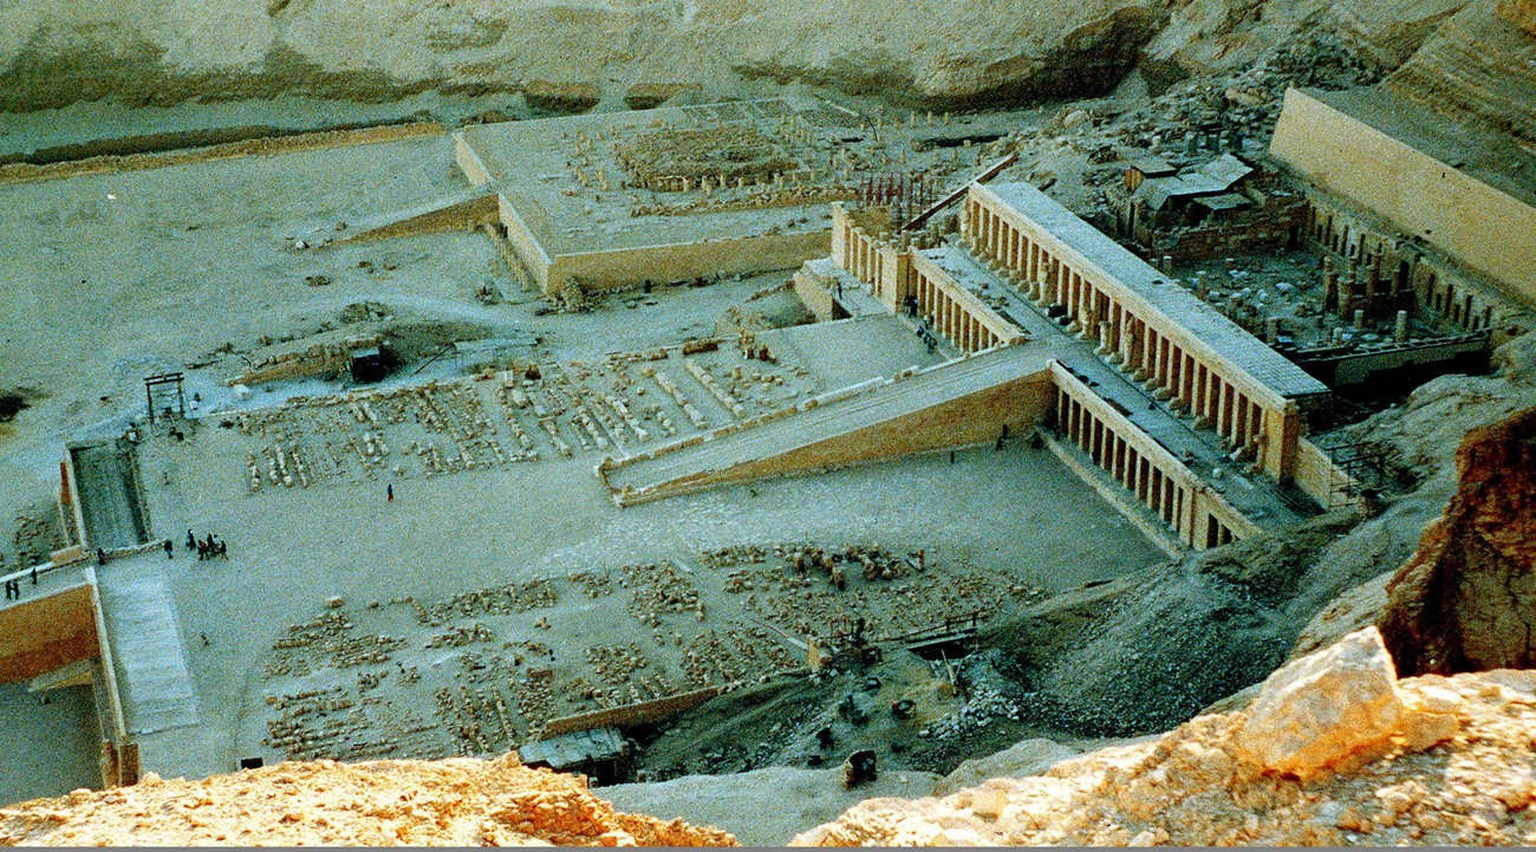 An undated file photo of the Hatschepsut funeral temple in Luxor where 17 NOV suspected Moslem militants opened fire on tourists. Twenty-eight people, including 11 foreign tourists, were killed in the attack.  The temple is situated in the Valley of the Queens in Luxor. The bus was said to be carrying tourists from Japan, Germany, Spain and Arab countries.